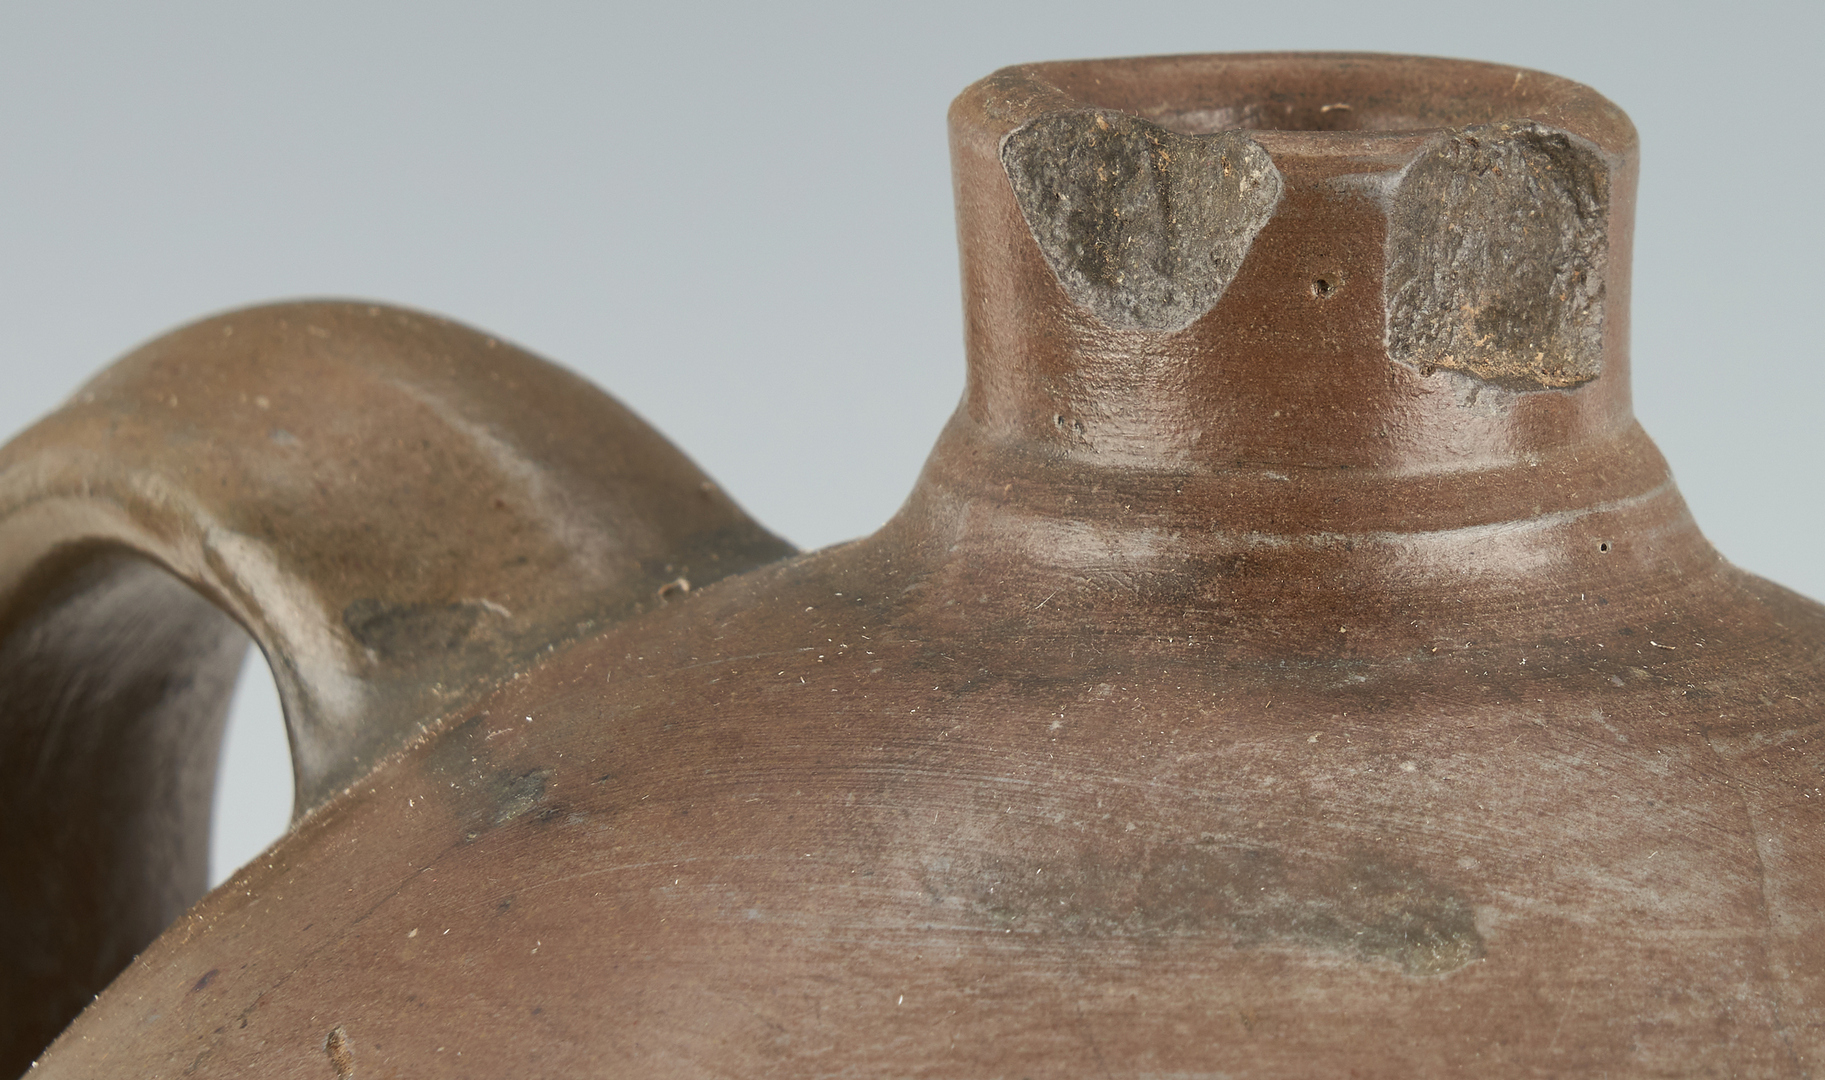 Lot 1070: WV Cobalt Decorated Stoneware Jug & Jar, Medford & Reilly, Two (2) Items